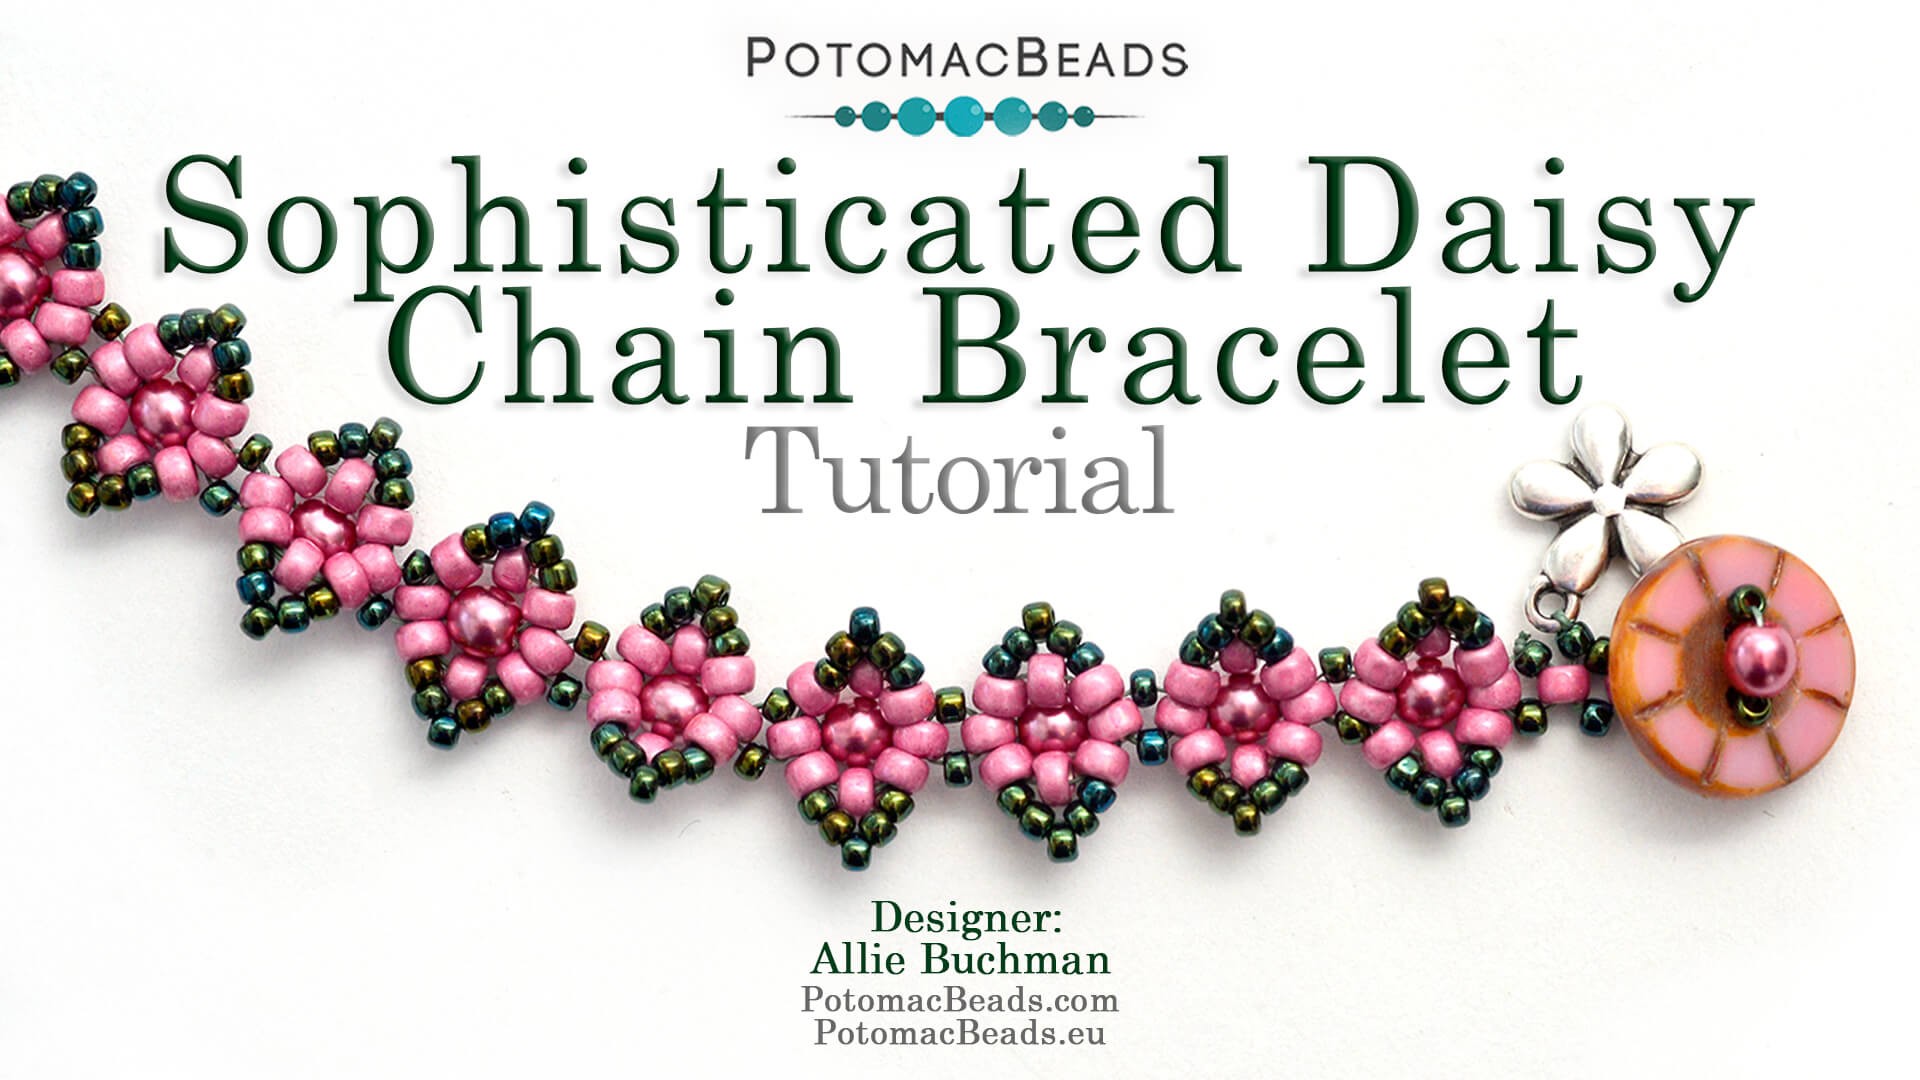 How to Bead Jewelry / Videos Sorted by Beads / Pearl Videos (Czech, Freshwater, Potomac Pearls) / Sophisticated Daisy Chain Bracelet Tutorial